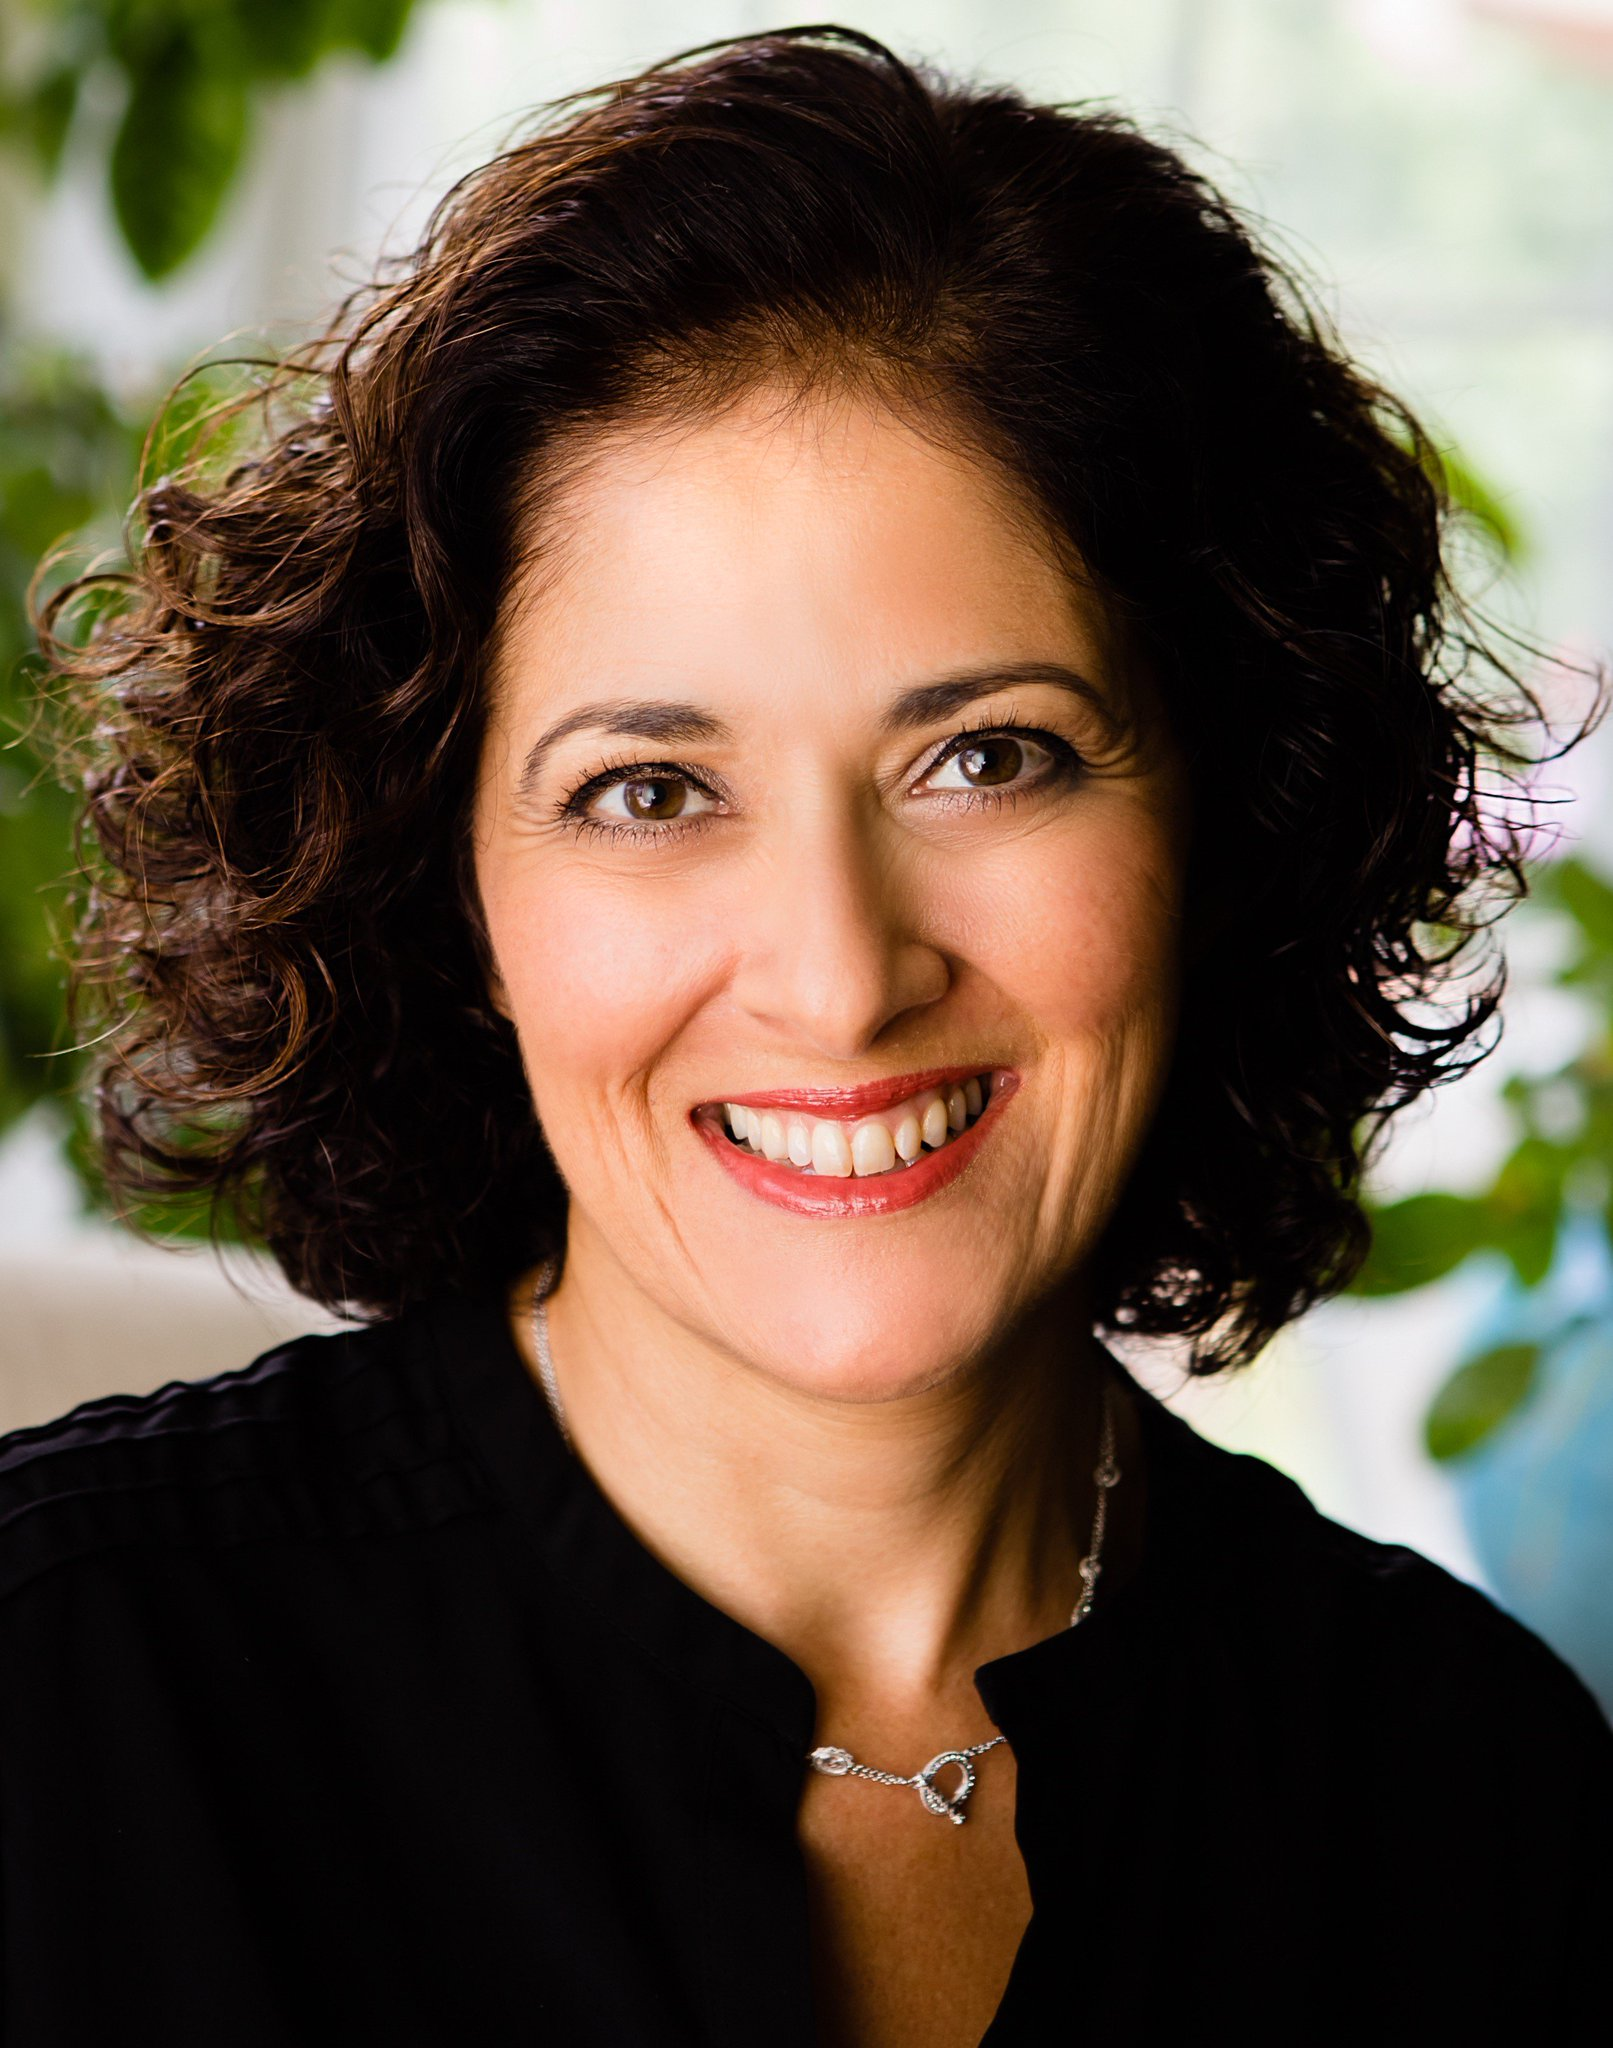 Today, 11/3 at 9PM EST! Join world-renowned author Homa Sabet Tavangar @growingupglobal for our first twitterchat on #globalmindset! #issedu https://t.co/nWSkI4xqWx